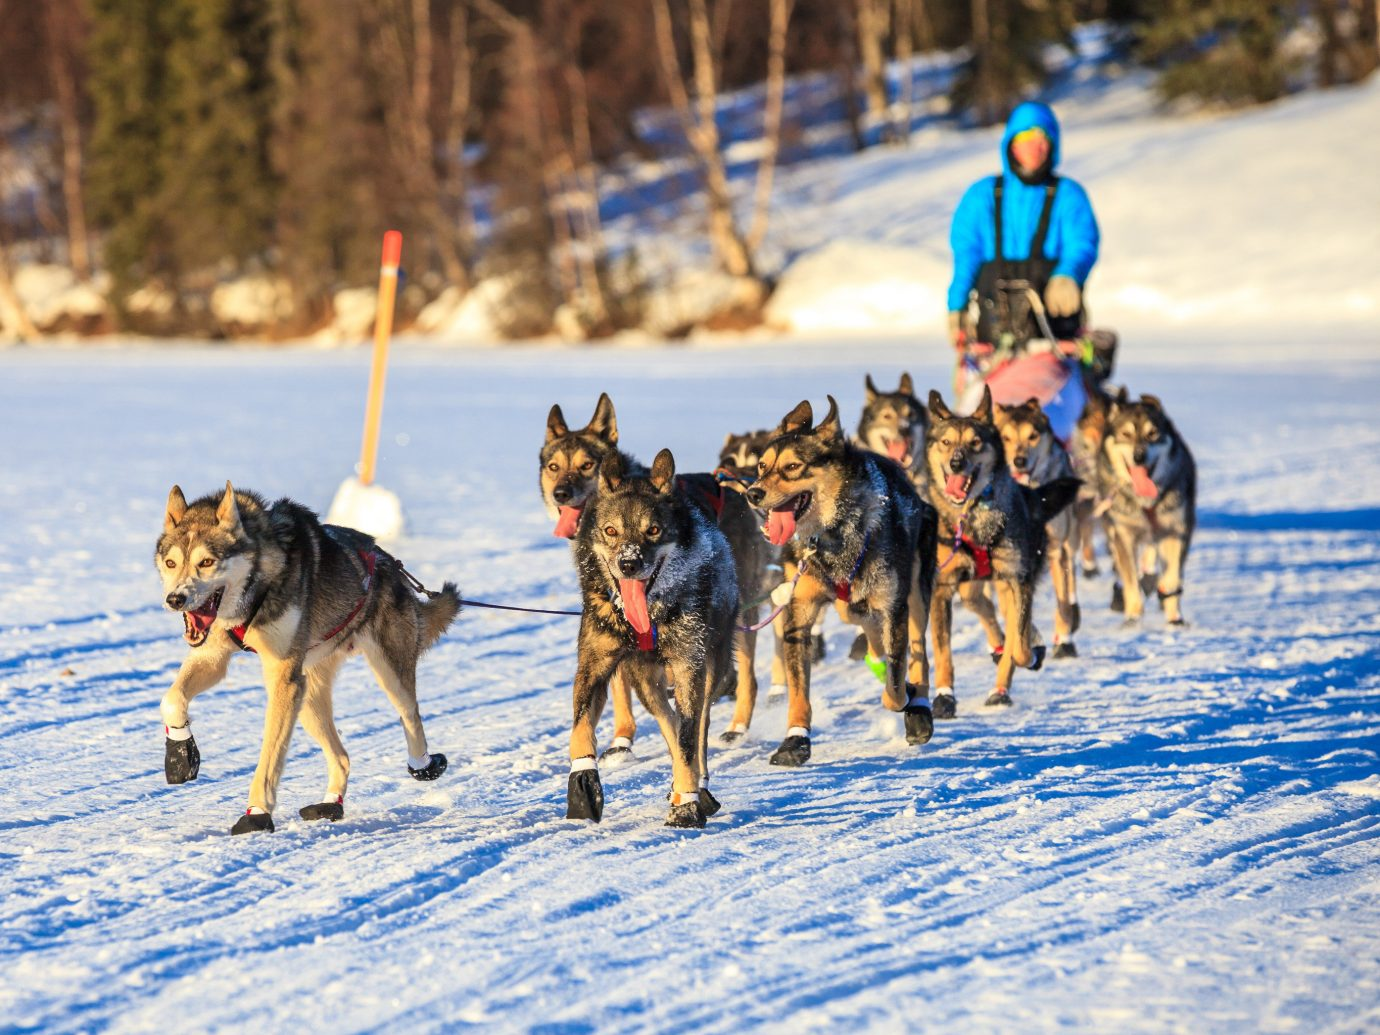 Hotels snow outdoor Dog mushing mammal Winter sled dog racing vehicle dog sled season transport dog like mammal